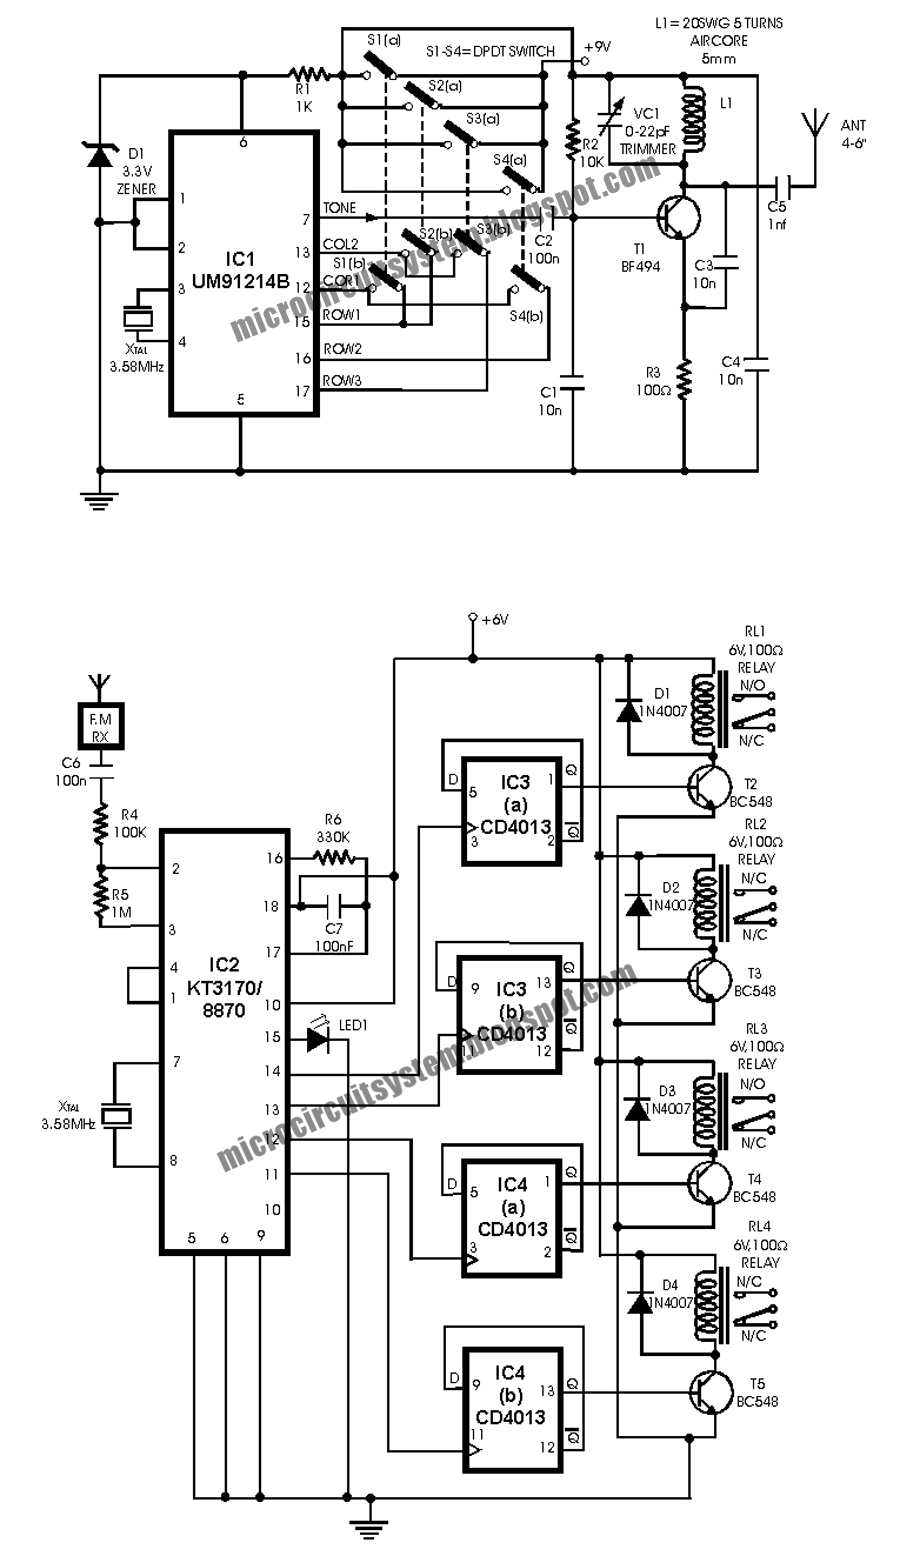 radio remote control circuit using dtmf